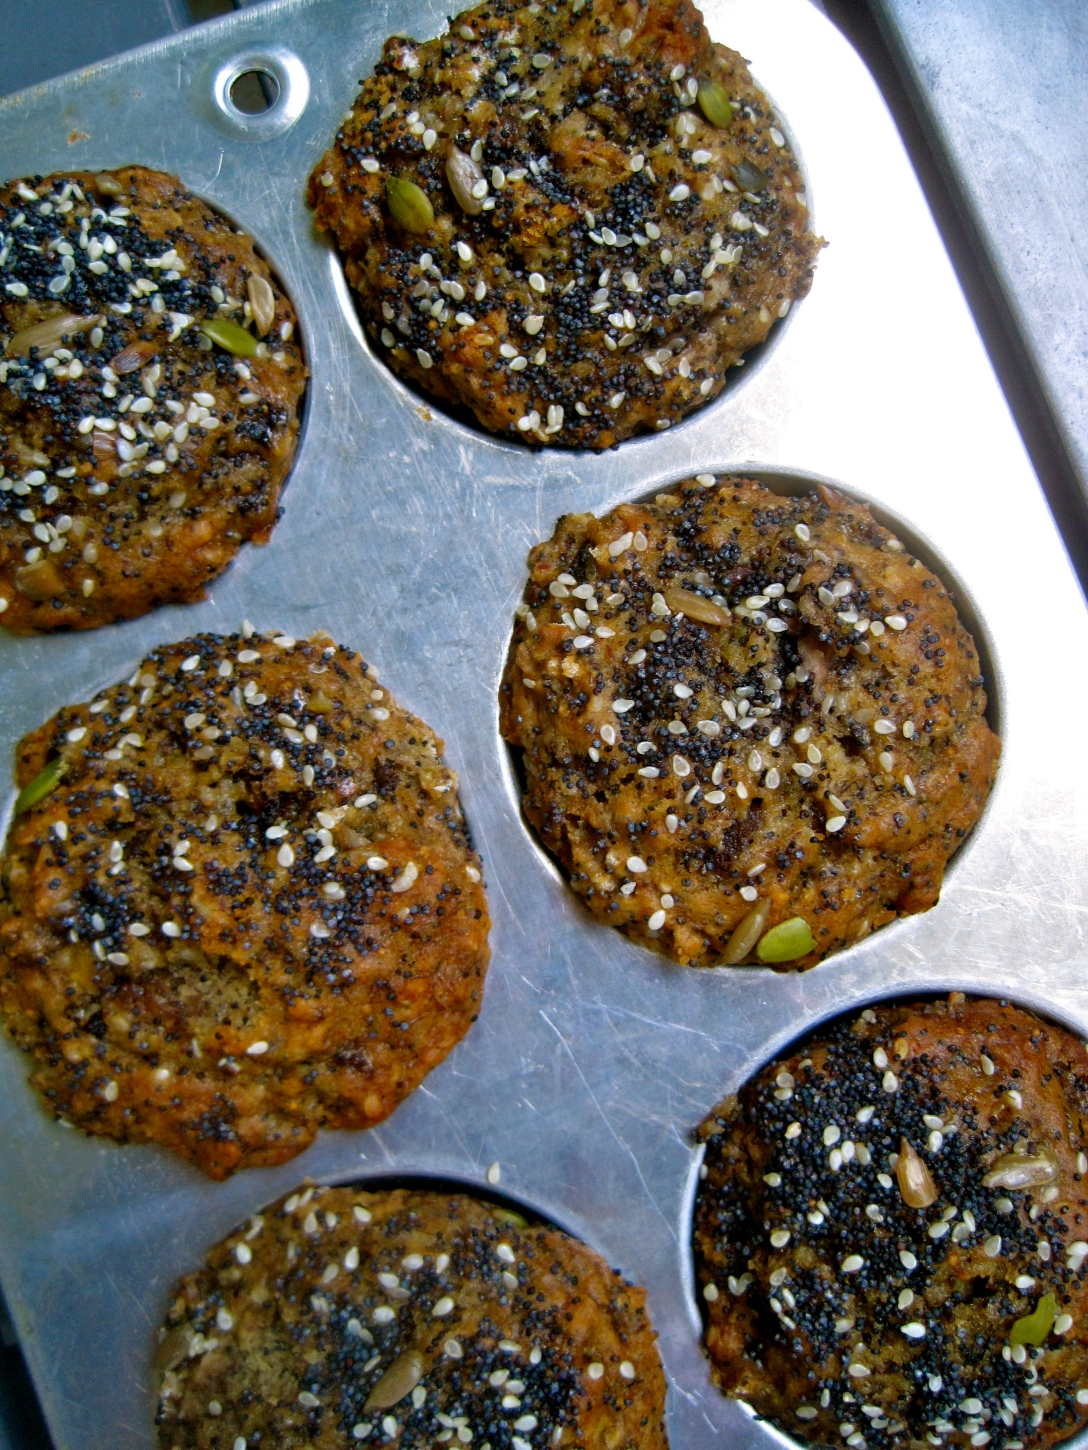 Banana and Fig Thousand Seed Muffins